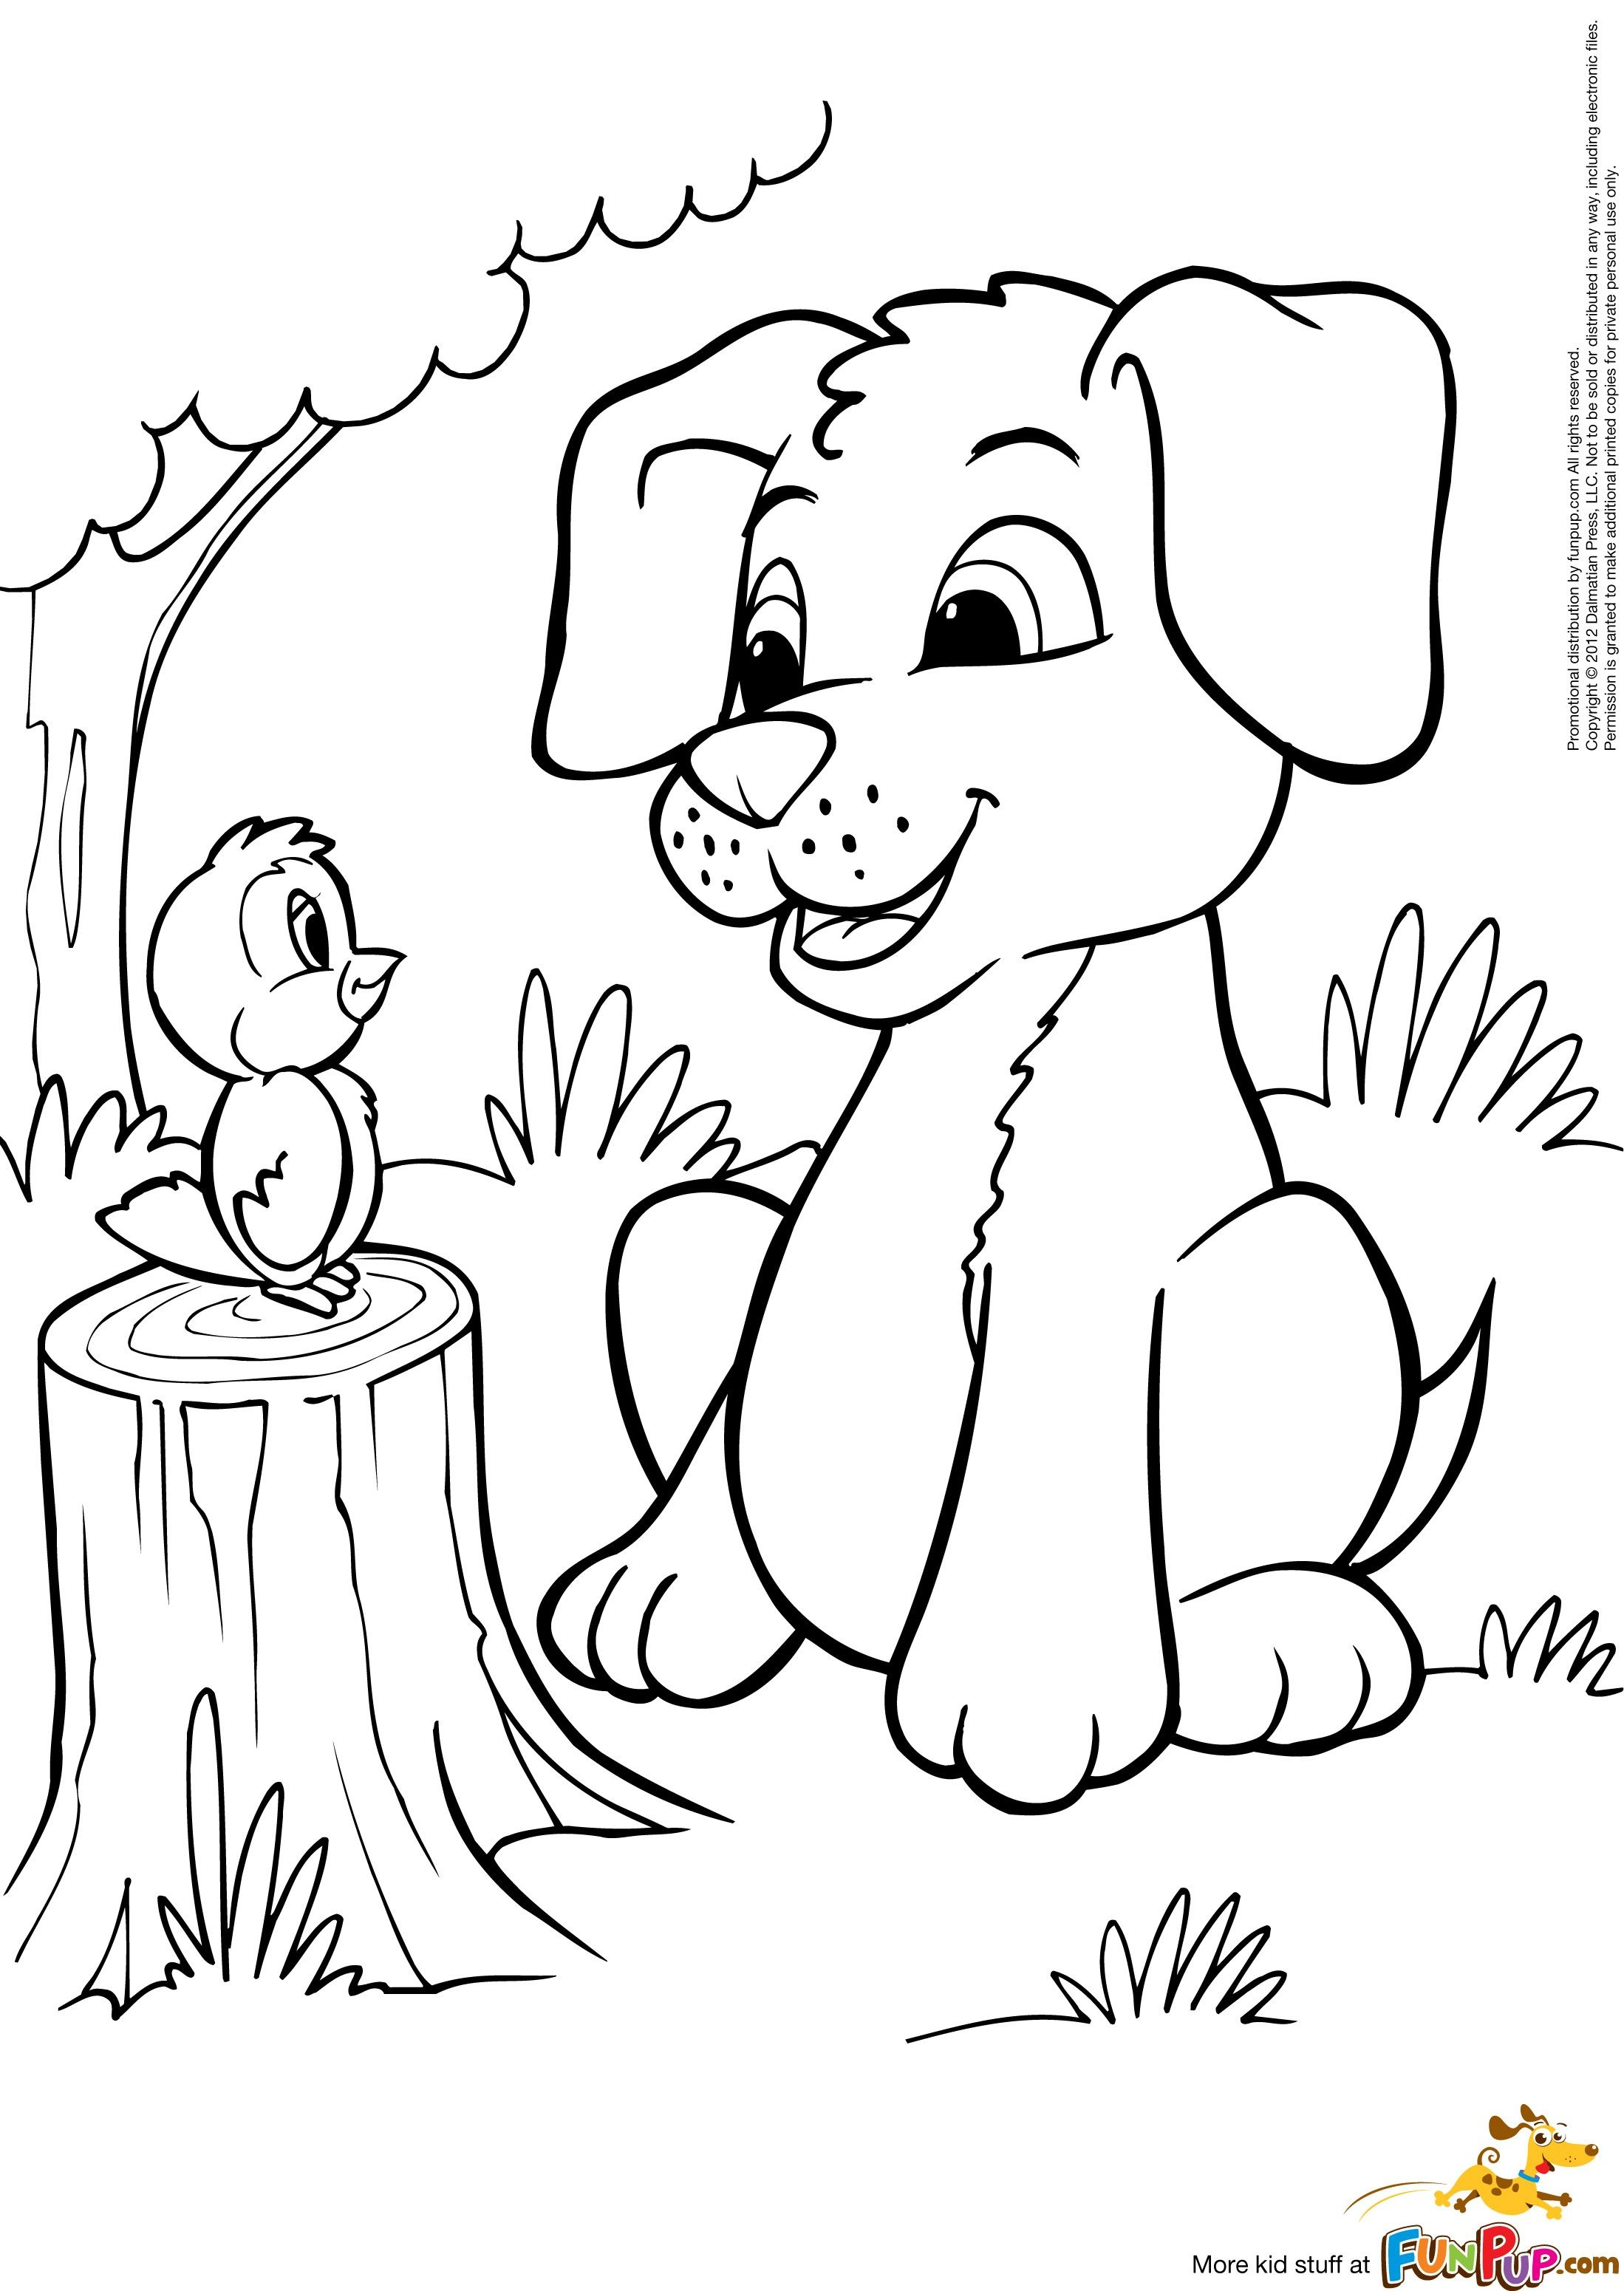 Photo Puppies Colouring Pages Images Puppy Coloring Pages